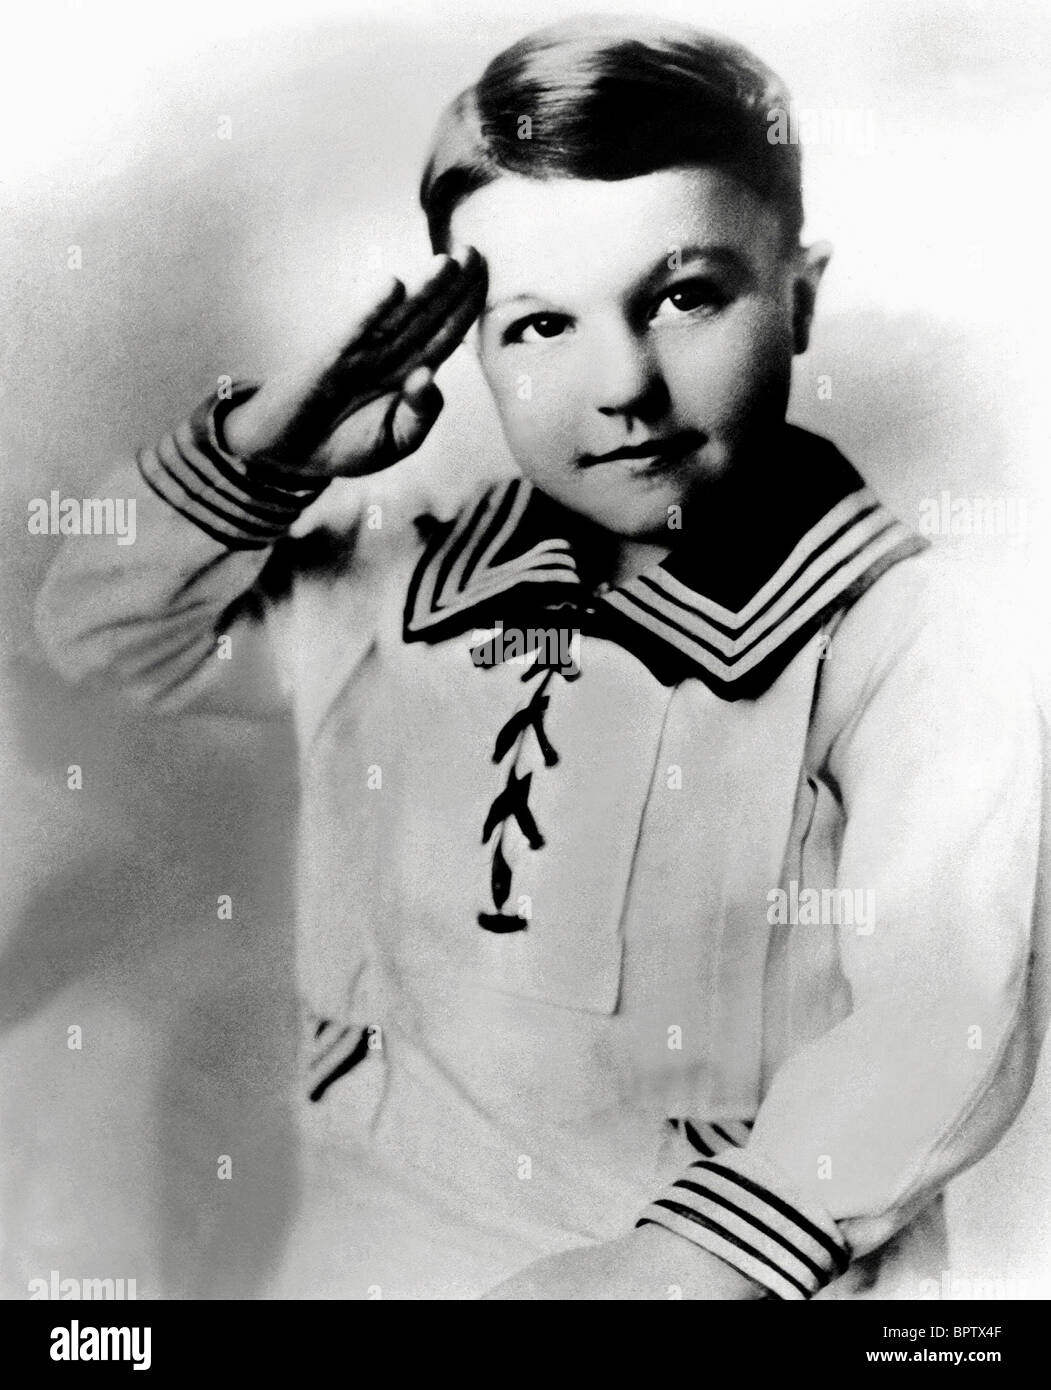 GENE KELLY AS A CHILD ACTOR (1916) - Stock Image